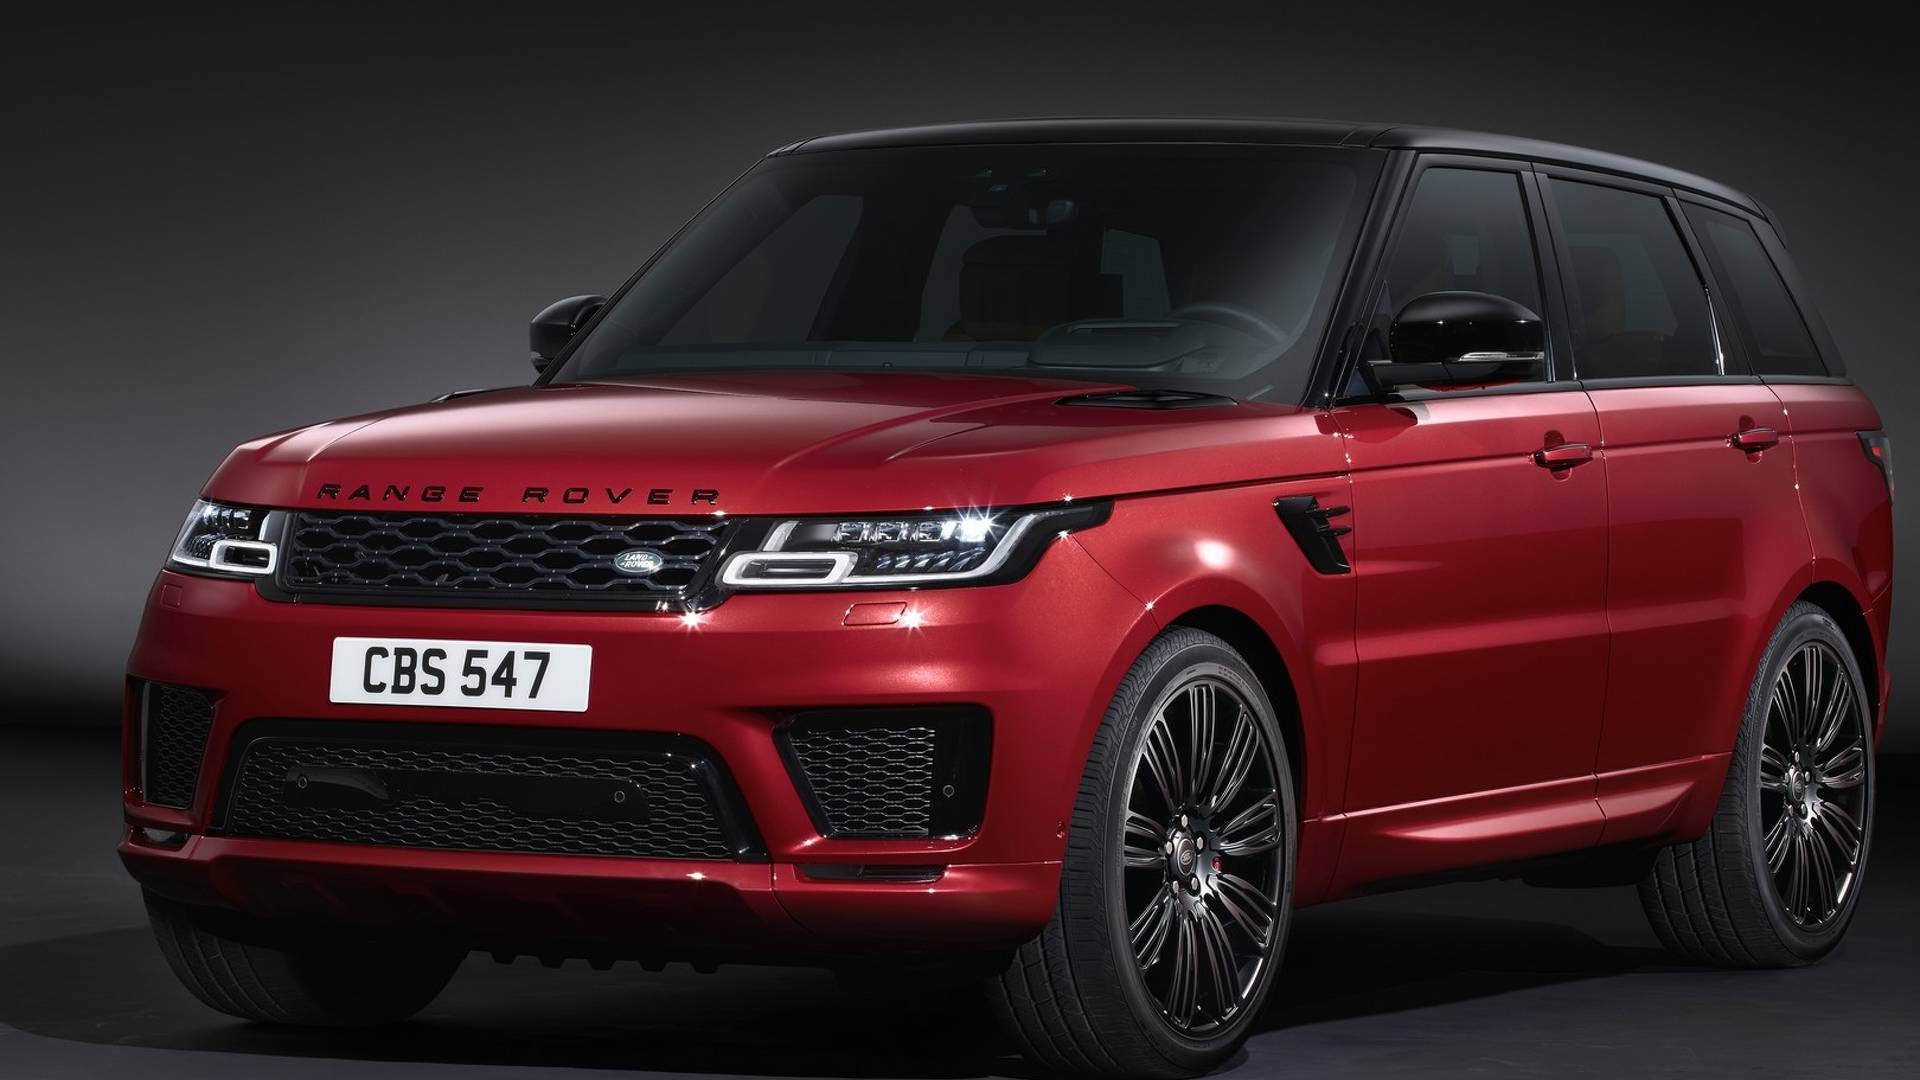 2019 Range Rover Sport Debuts Plug-In Hybrid, More Powerful SVR